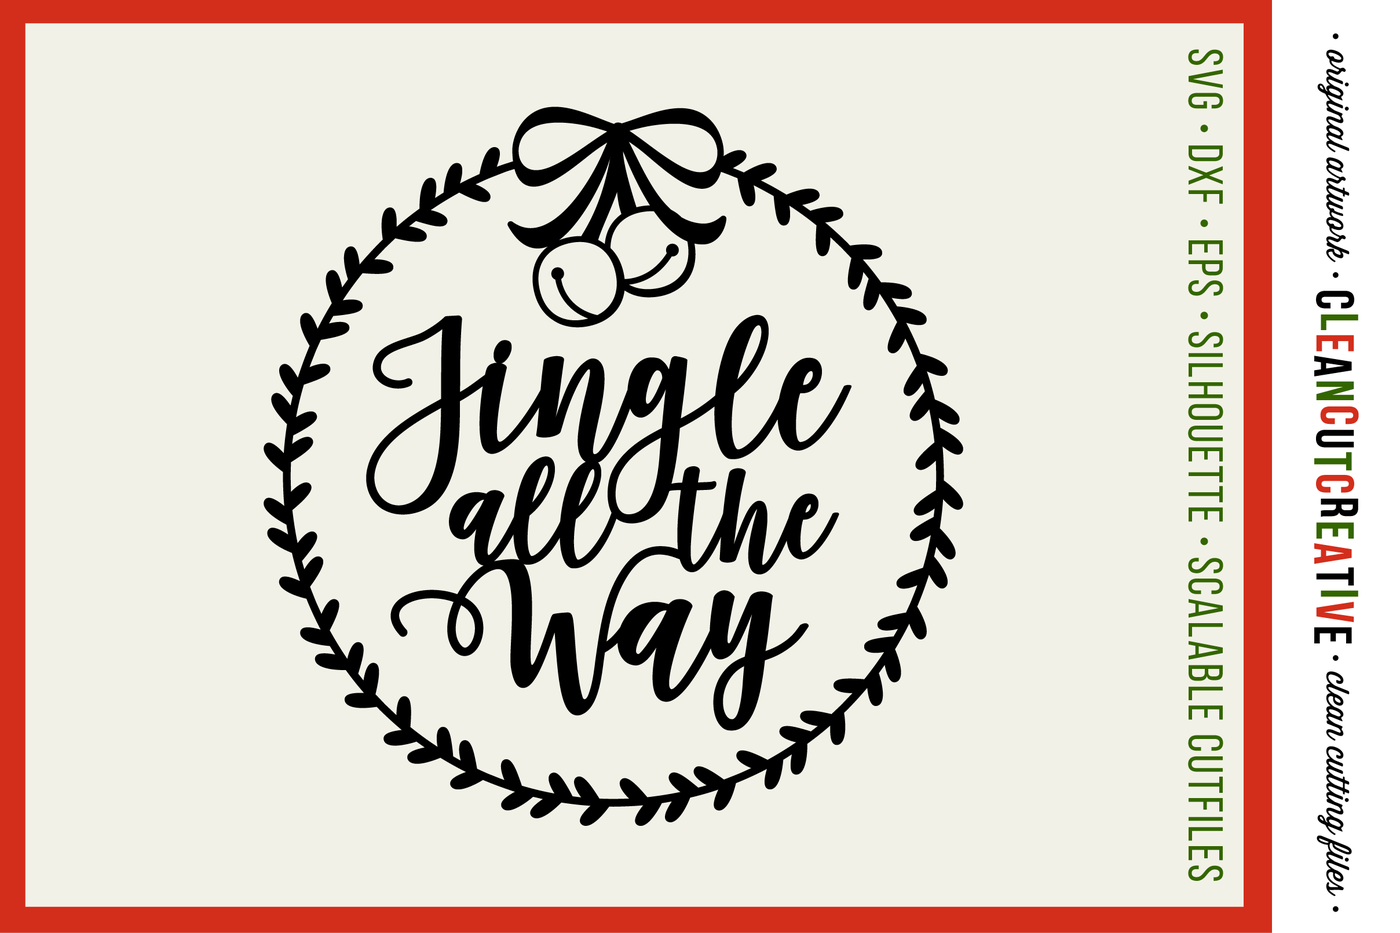 Jingle All The Way With Wreath Christmas Design Svg Dxf Eps Png